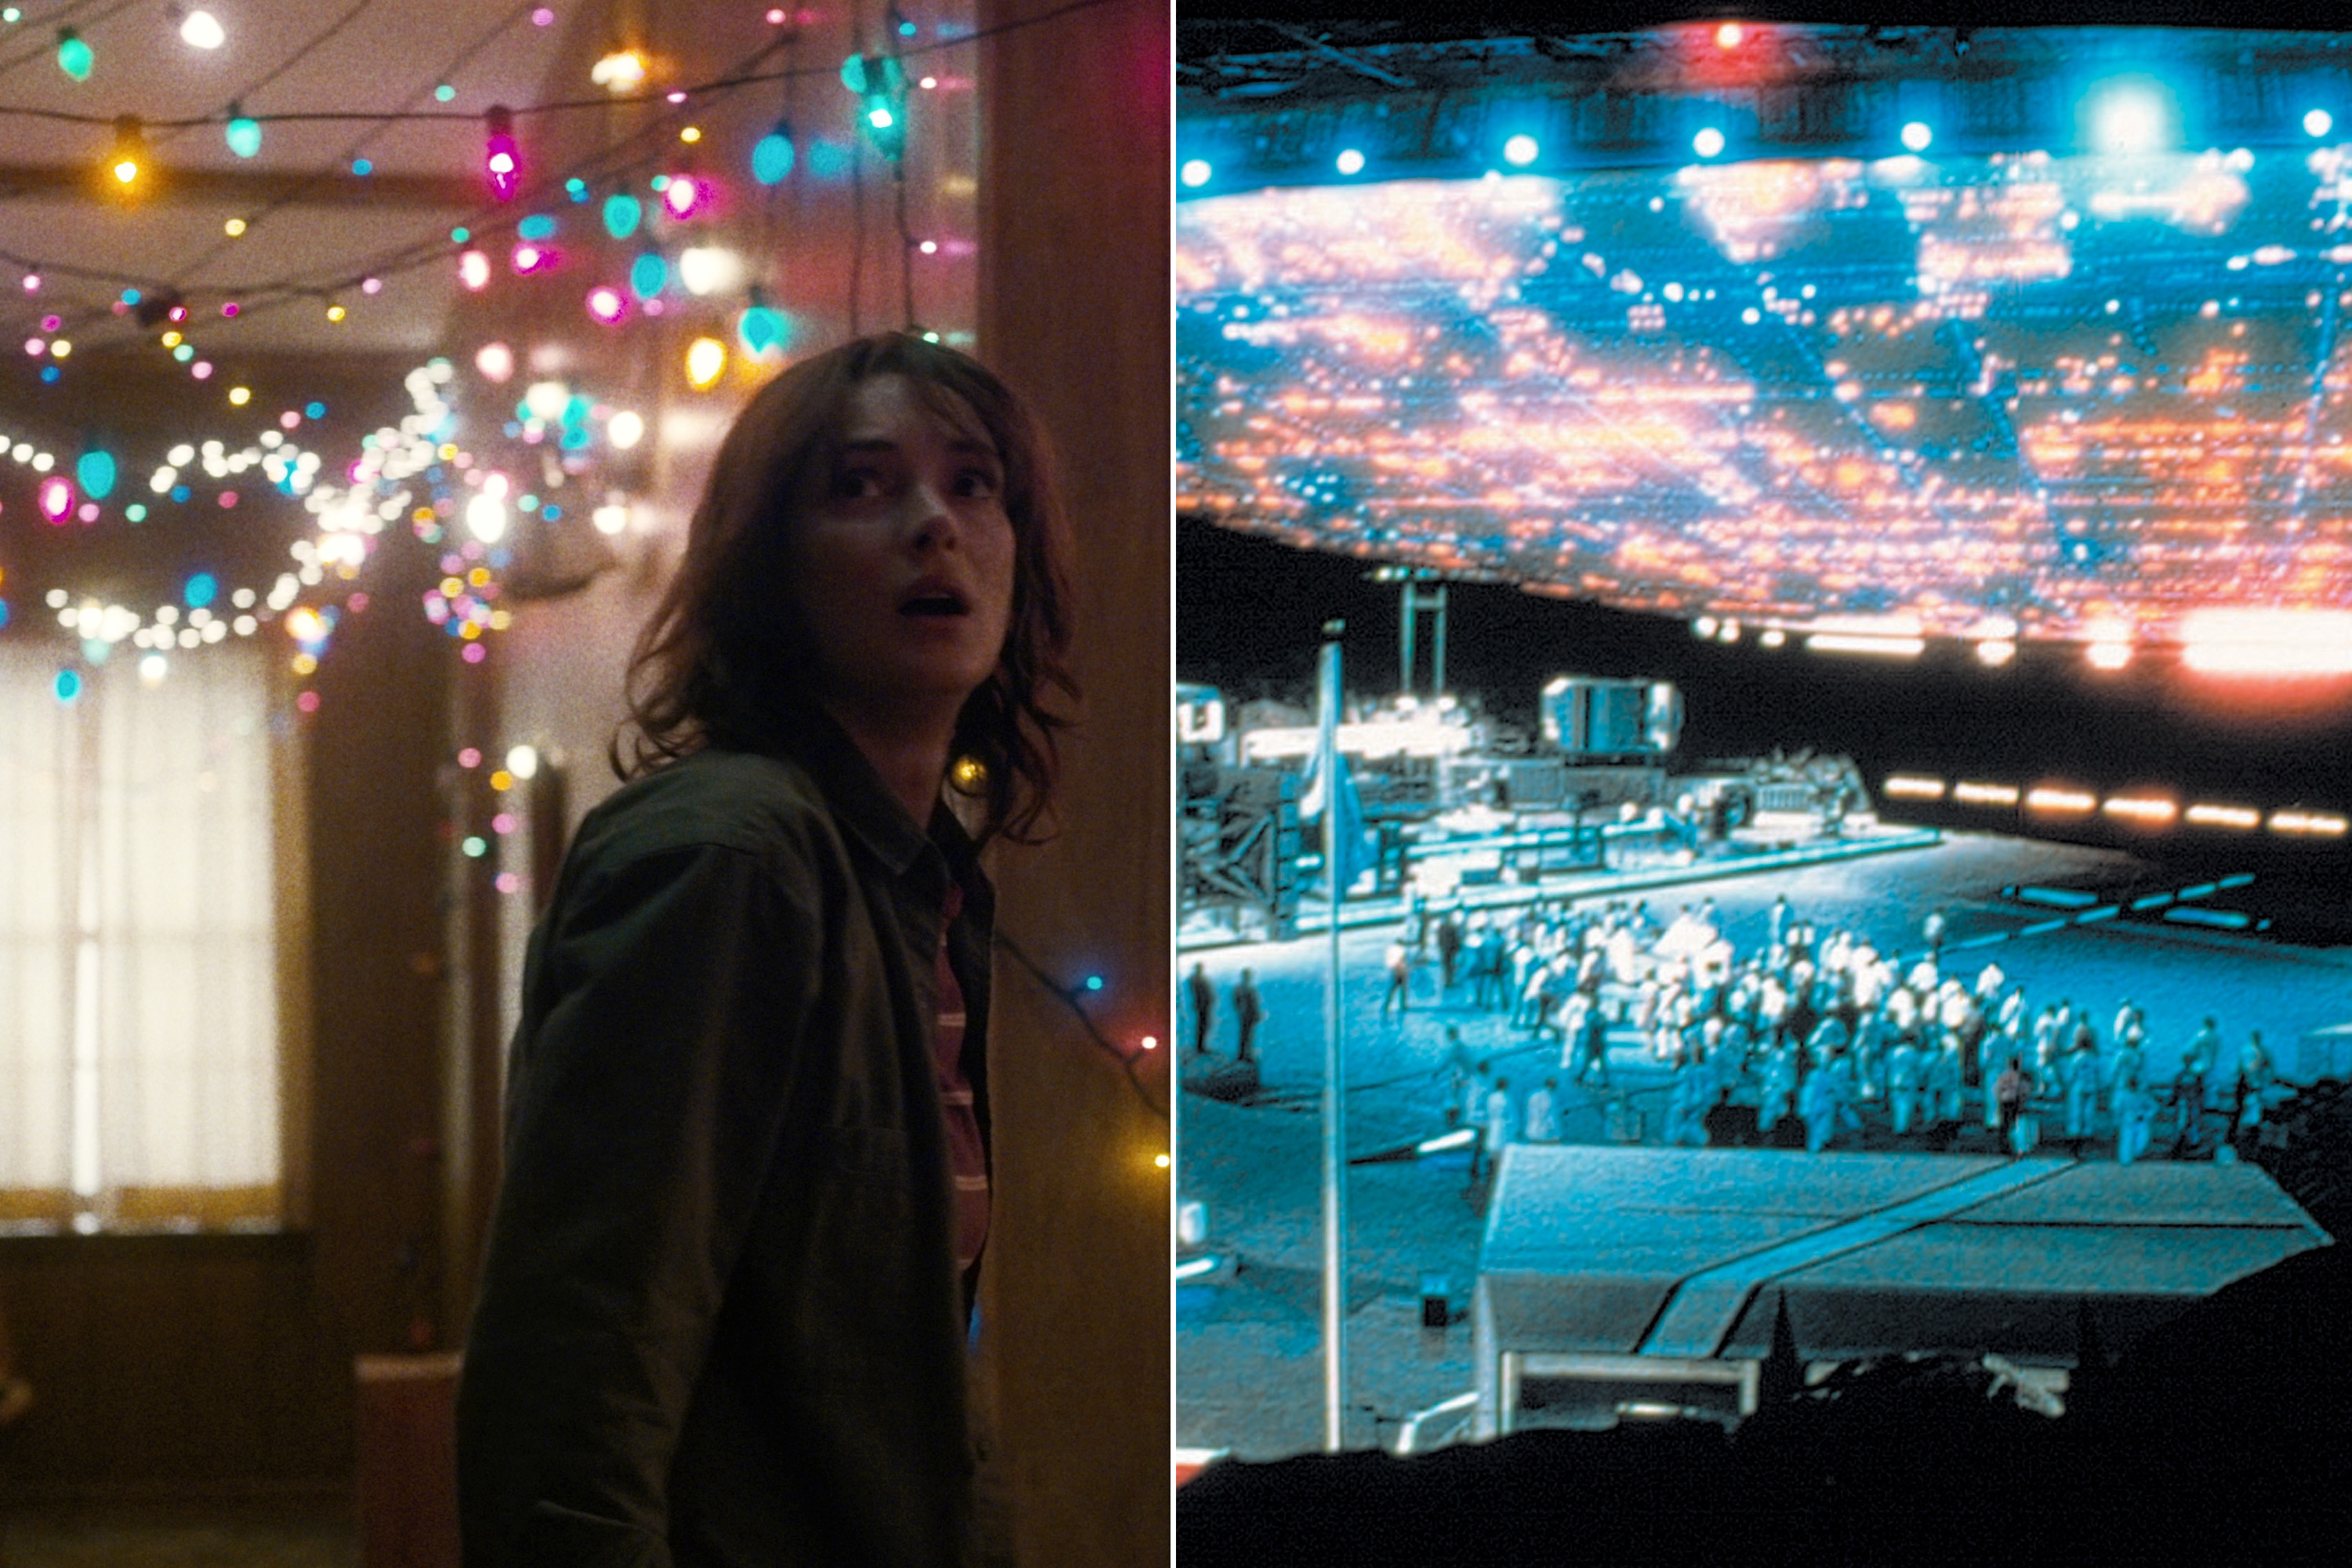 Stranger Things/Close Encounters of the Third Kind